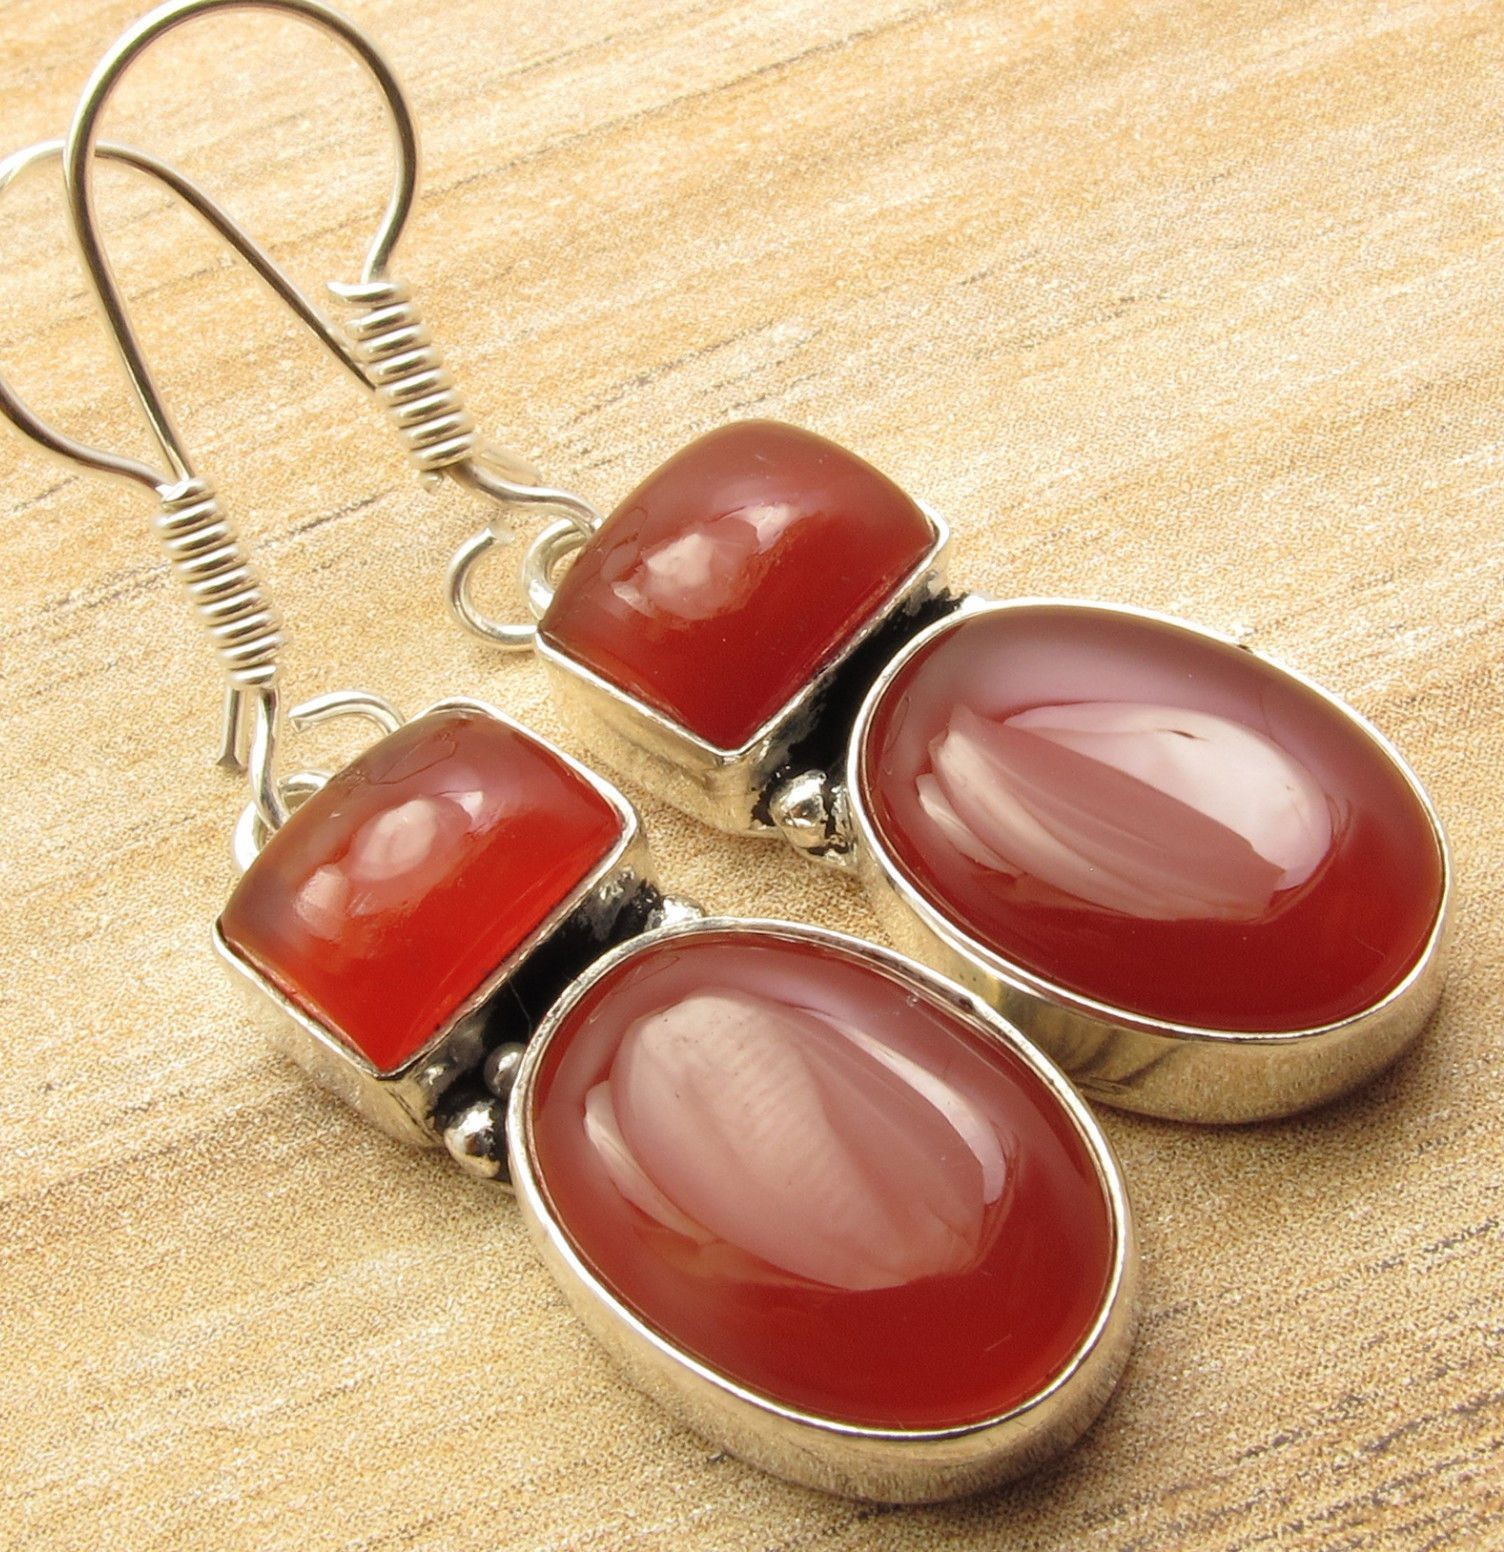 Perak Overlay 2 BATU Earrings Red CARNELIAN Handcrafted Jewelry 4